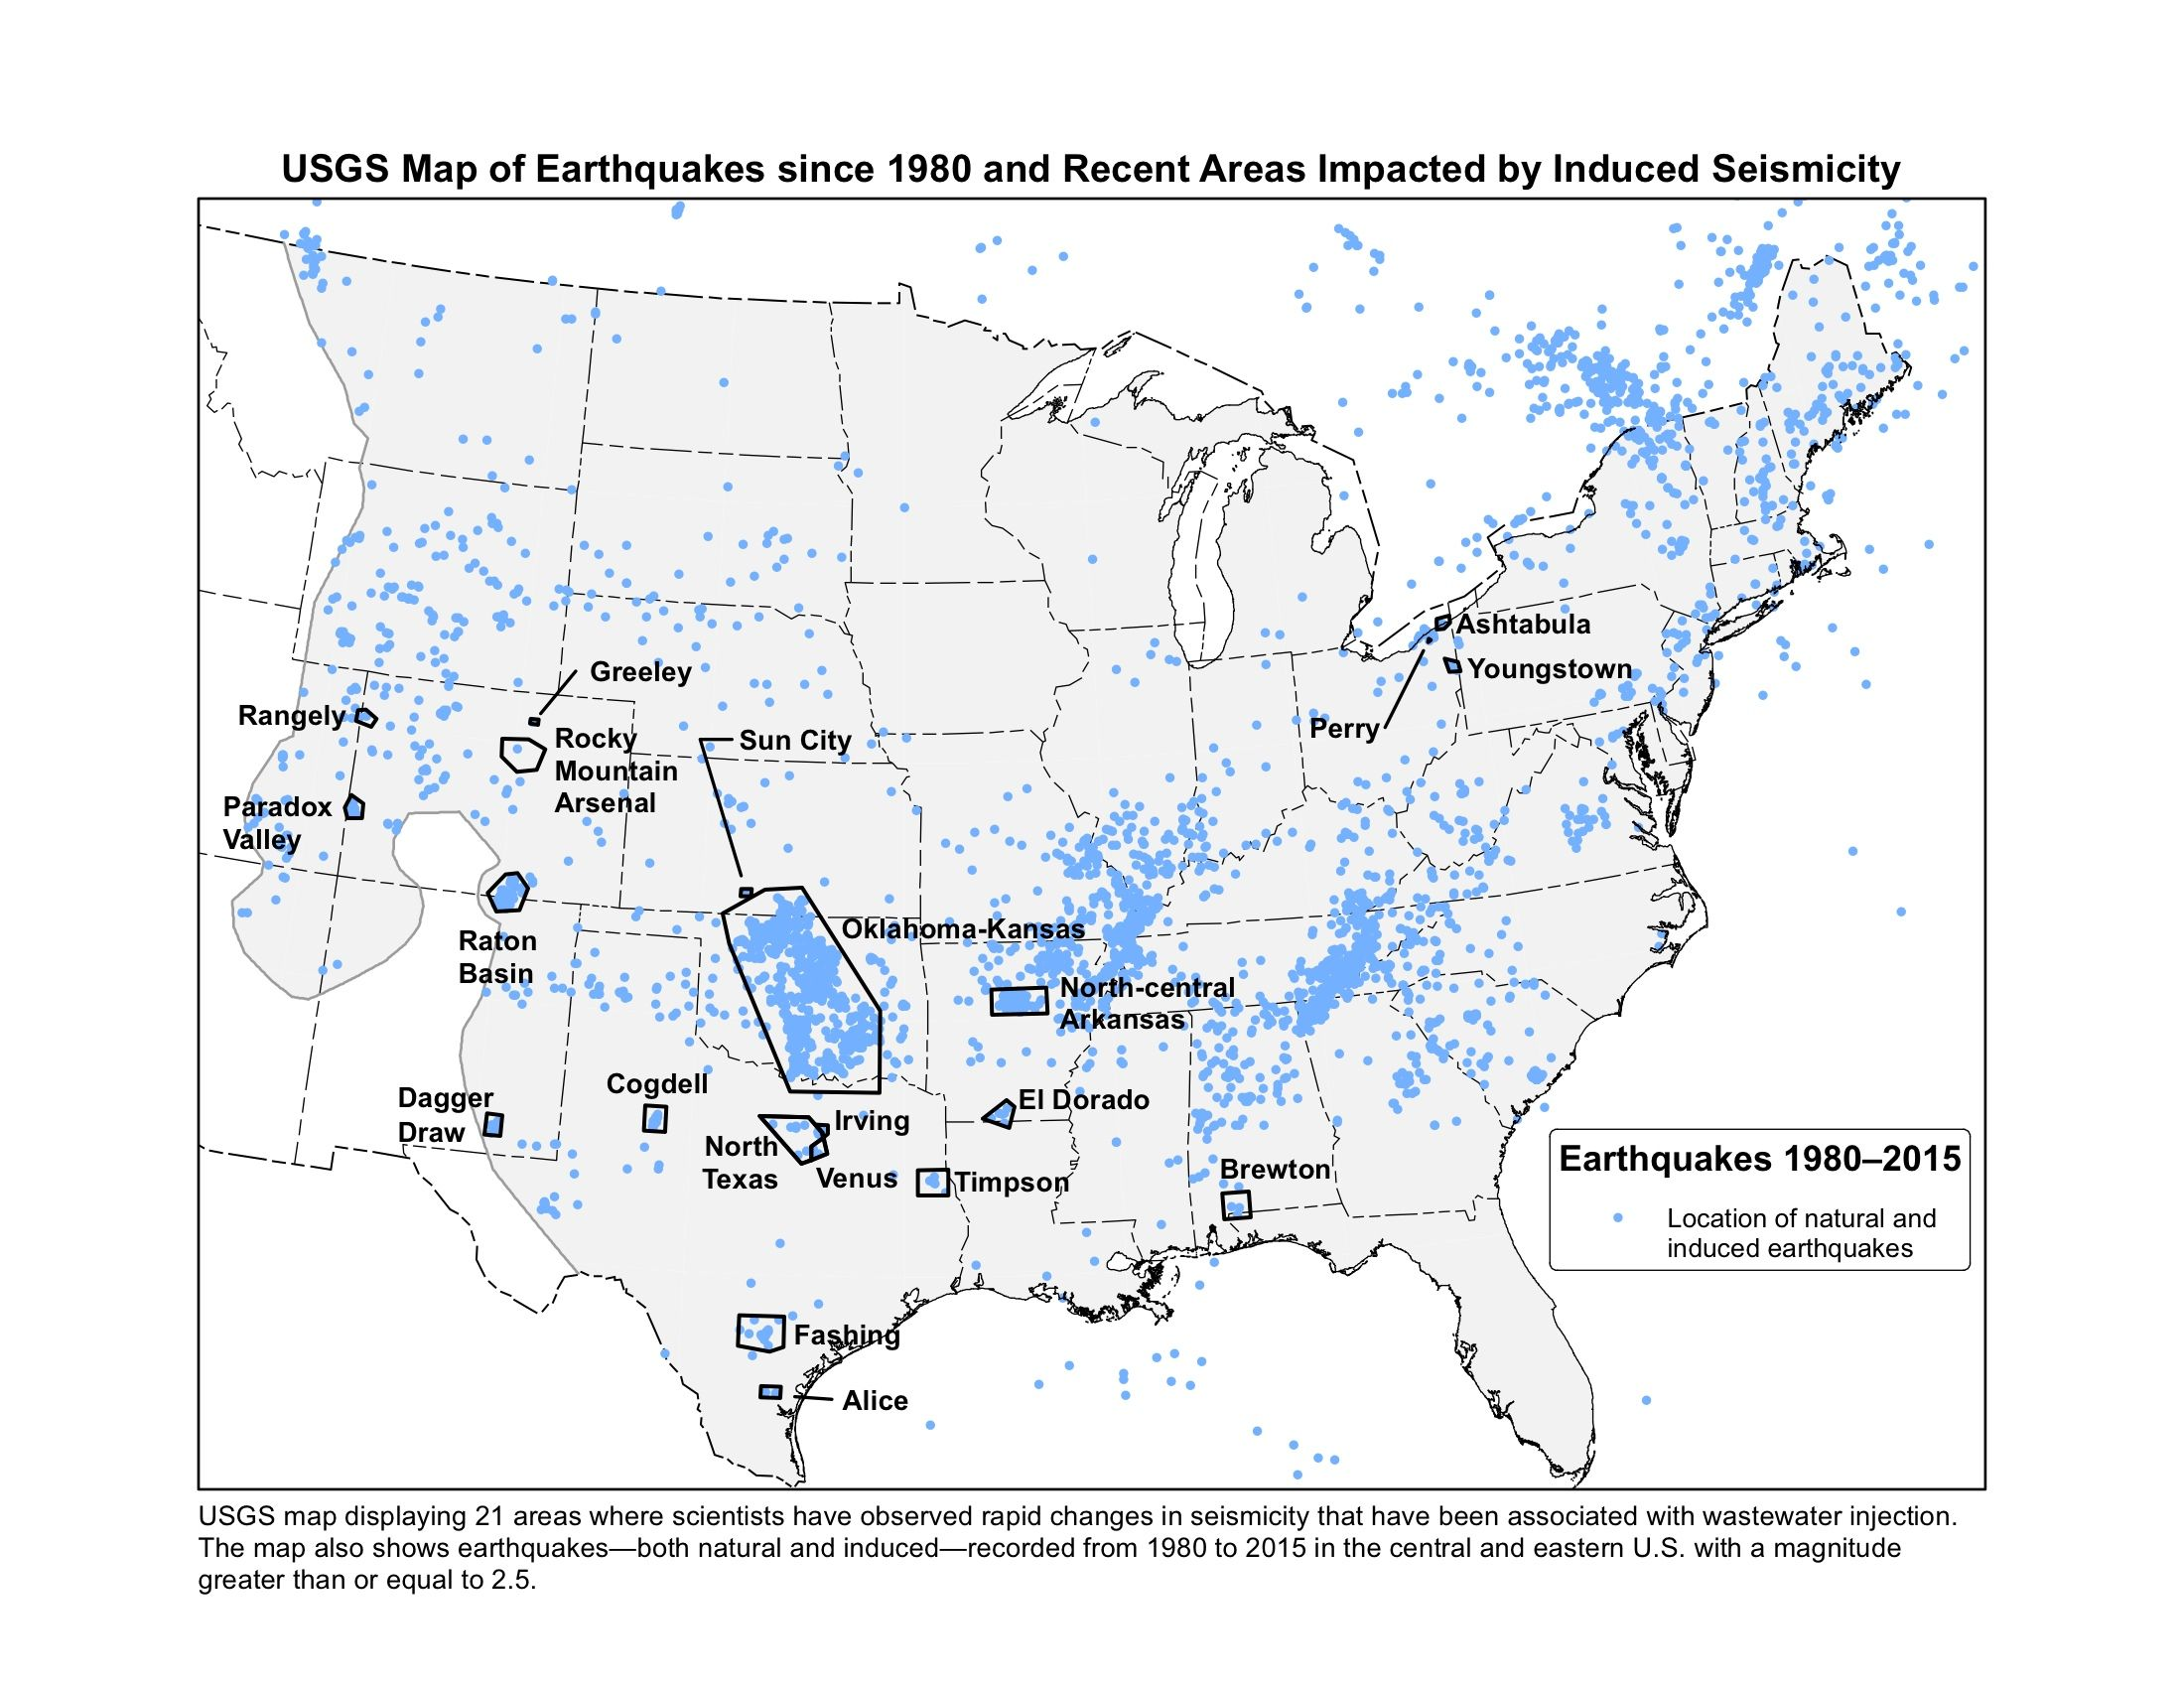 USGS map displaying 21 areas where scientists have observed rapid